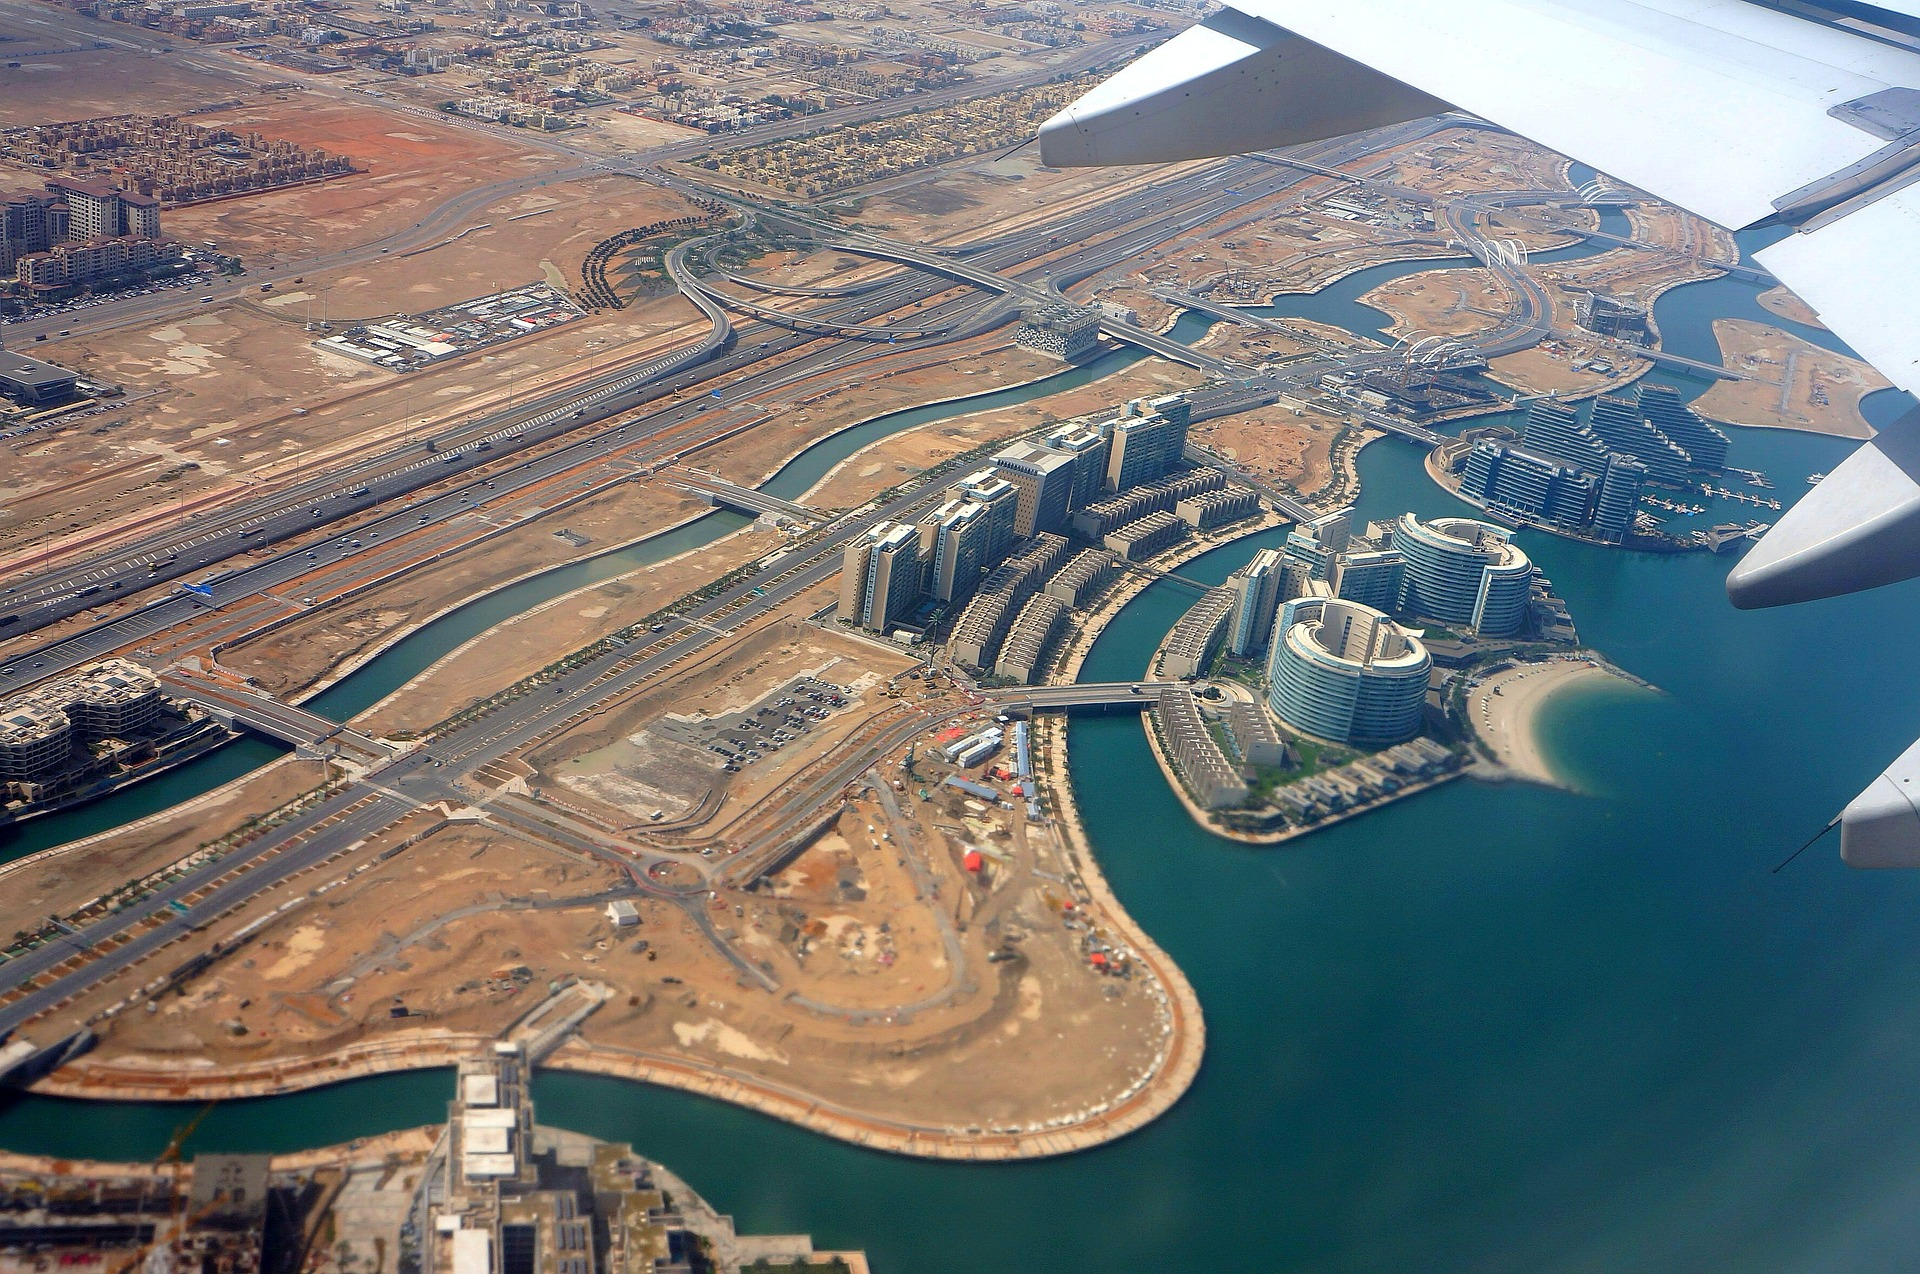 Aerial view of Abu Dhabi, UAE